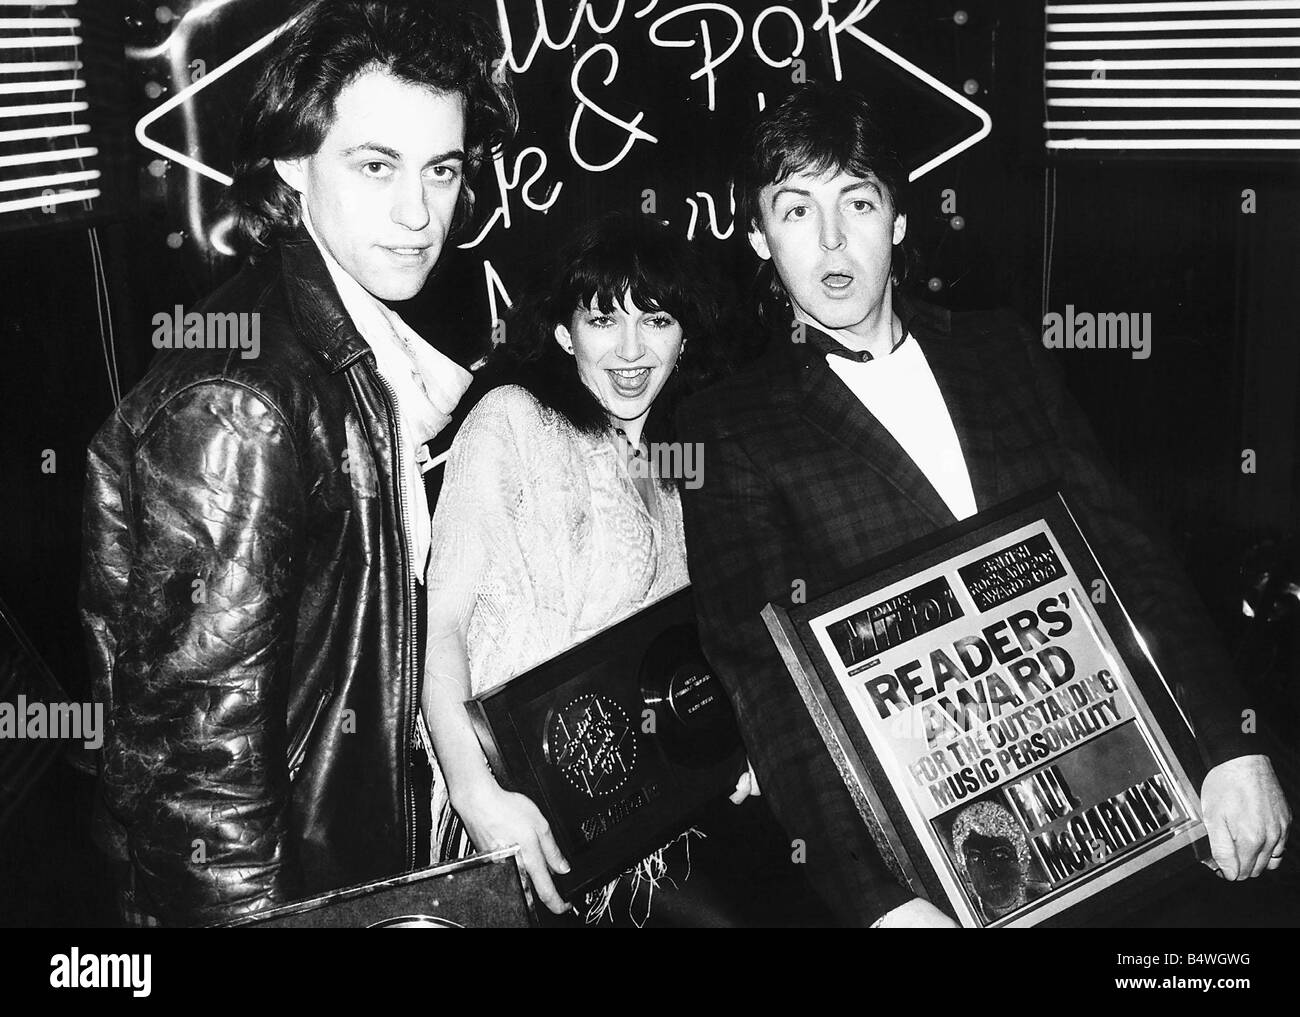 Kate Bush with fellow pop singers Bob Geldof and Paul McCartney at The British Rock and Pop Awards February 1980 Stock Photo